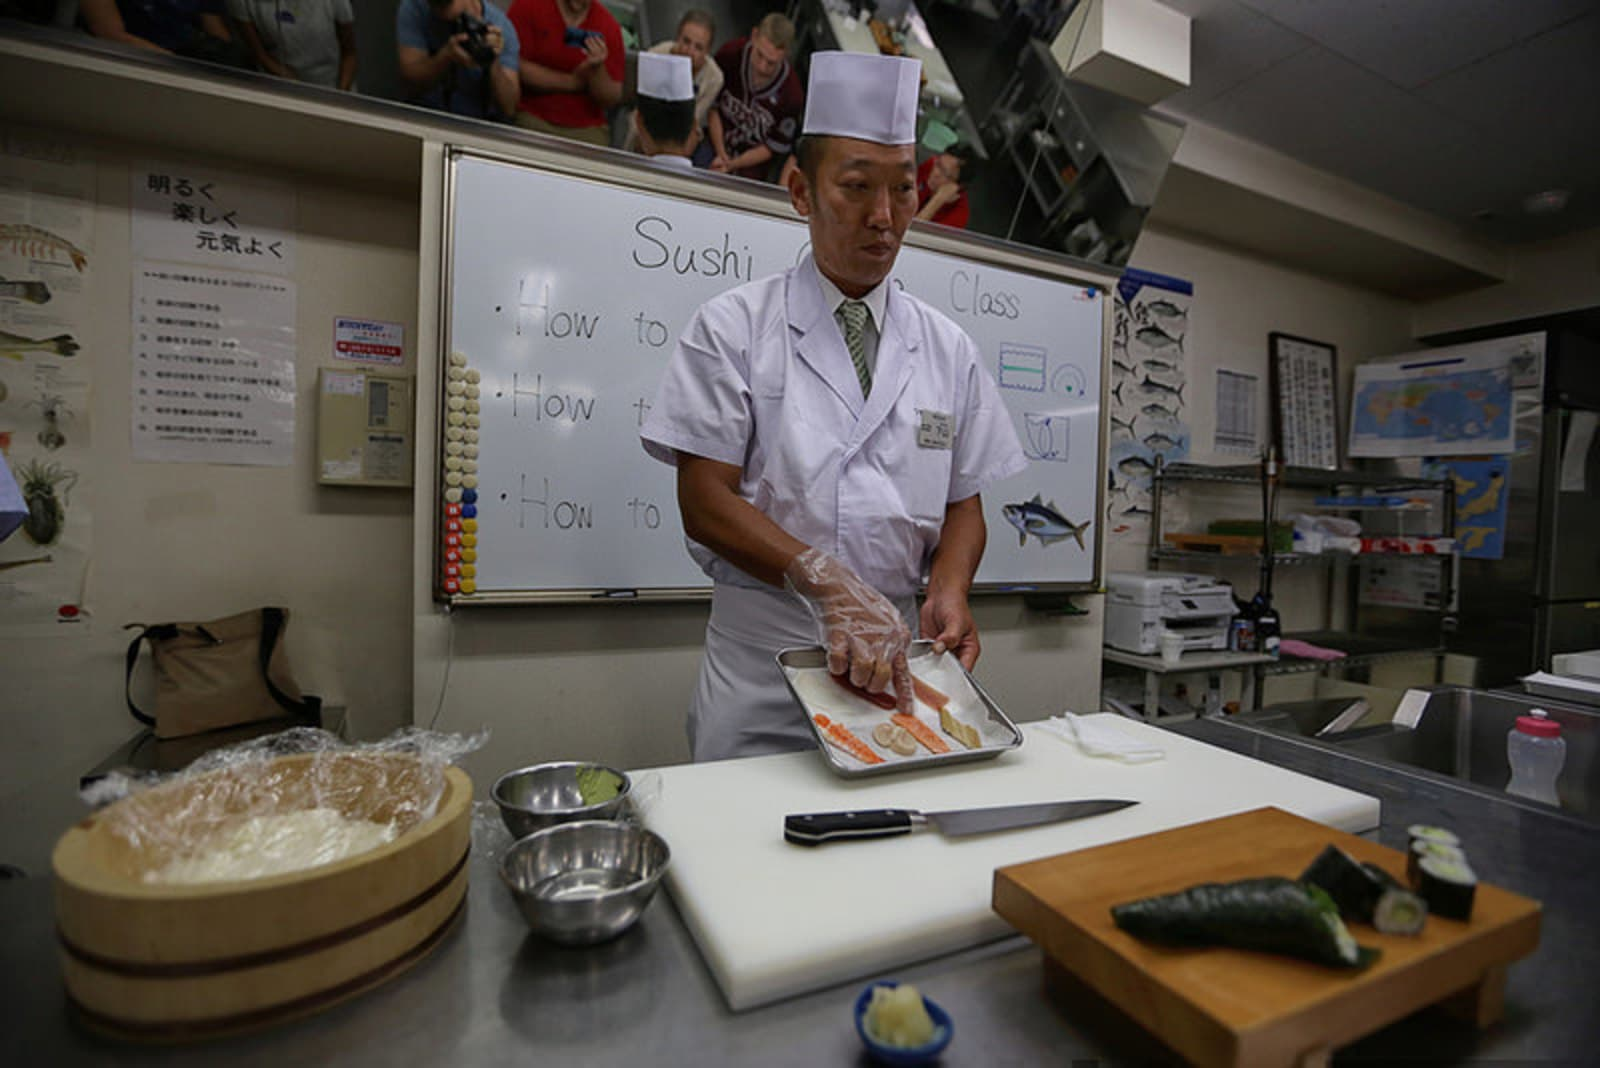 Learning how to roll sushi from a master